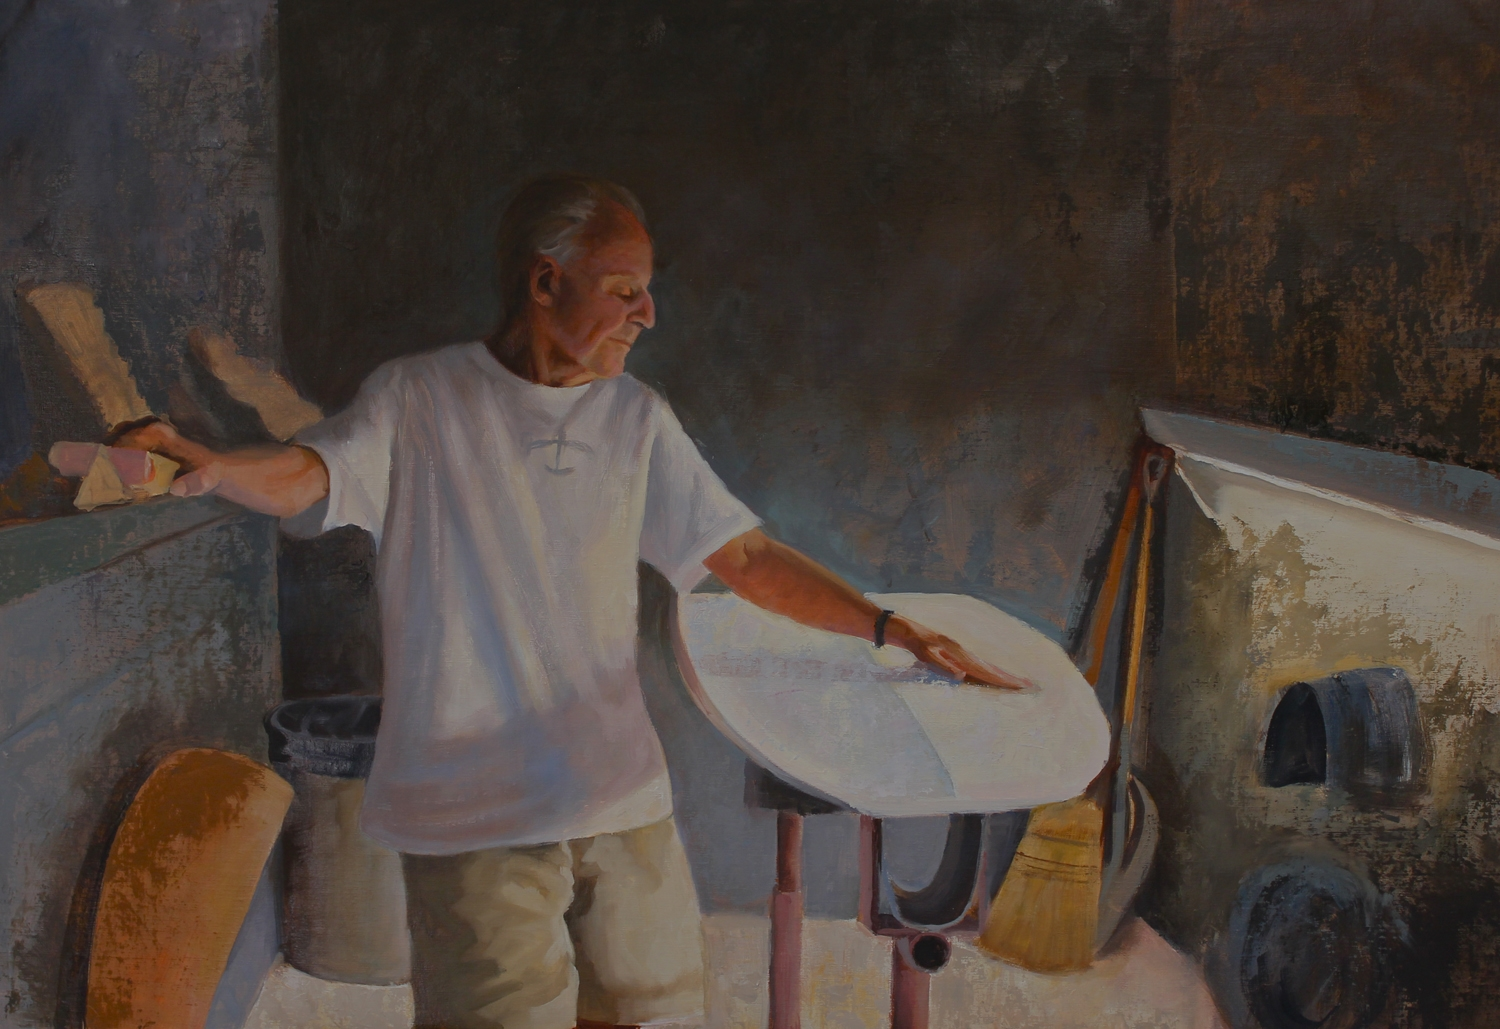 Reynolds Yater, oil on canvas, 24x36